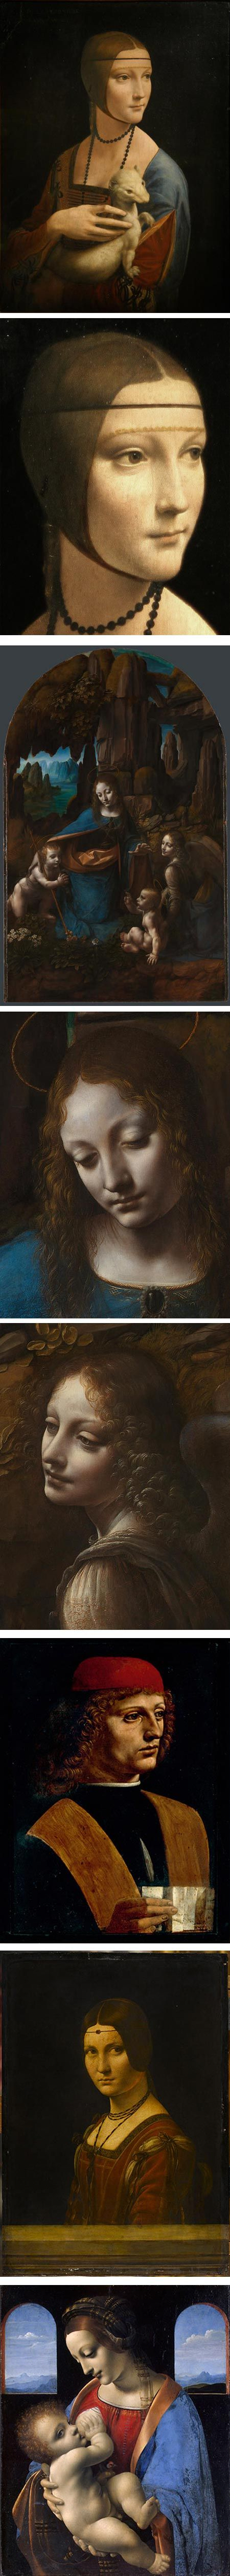 Leonardo Da Vinci's Paintings -it's as if they could walk off the page and talk to me...